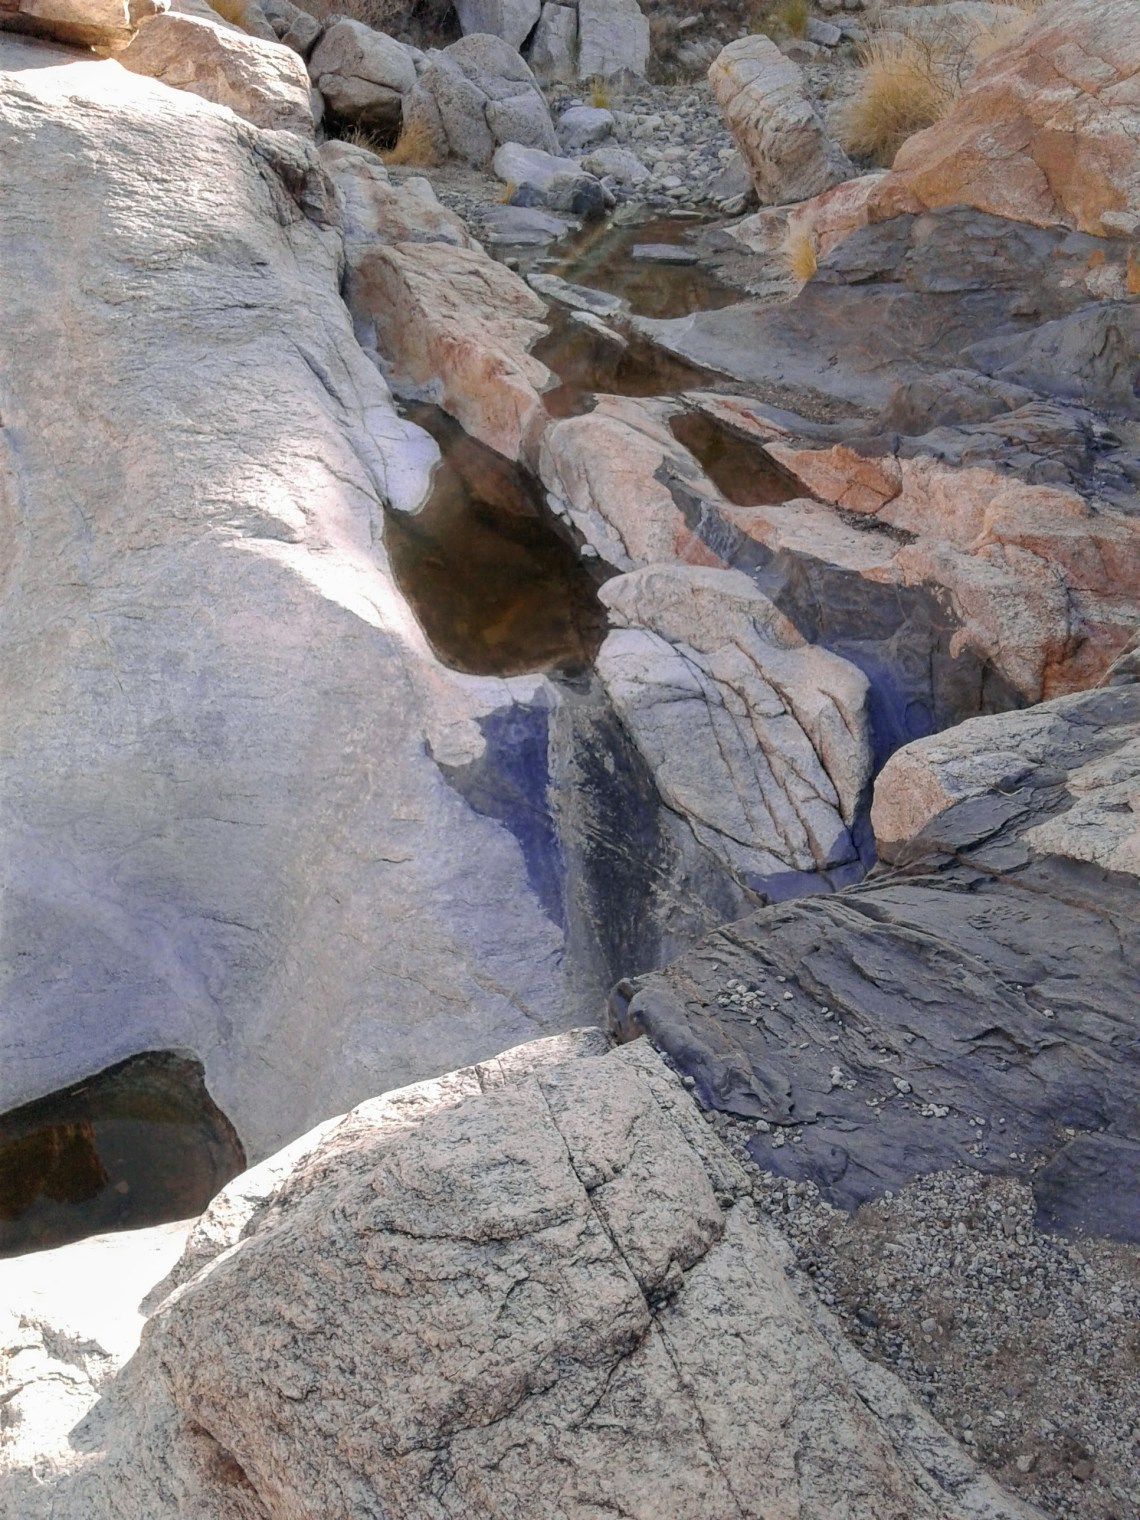 pools of rainwater trapped in rocks